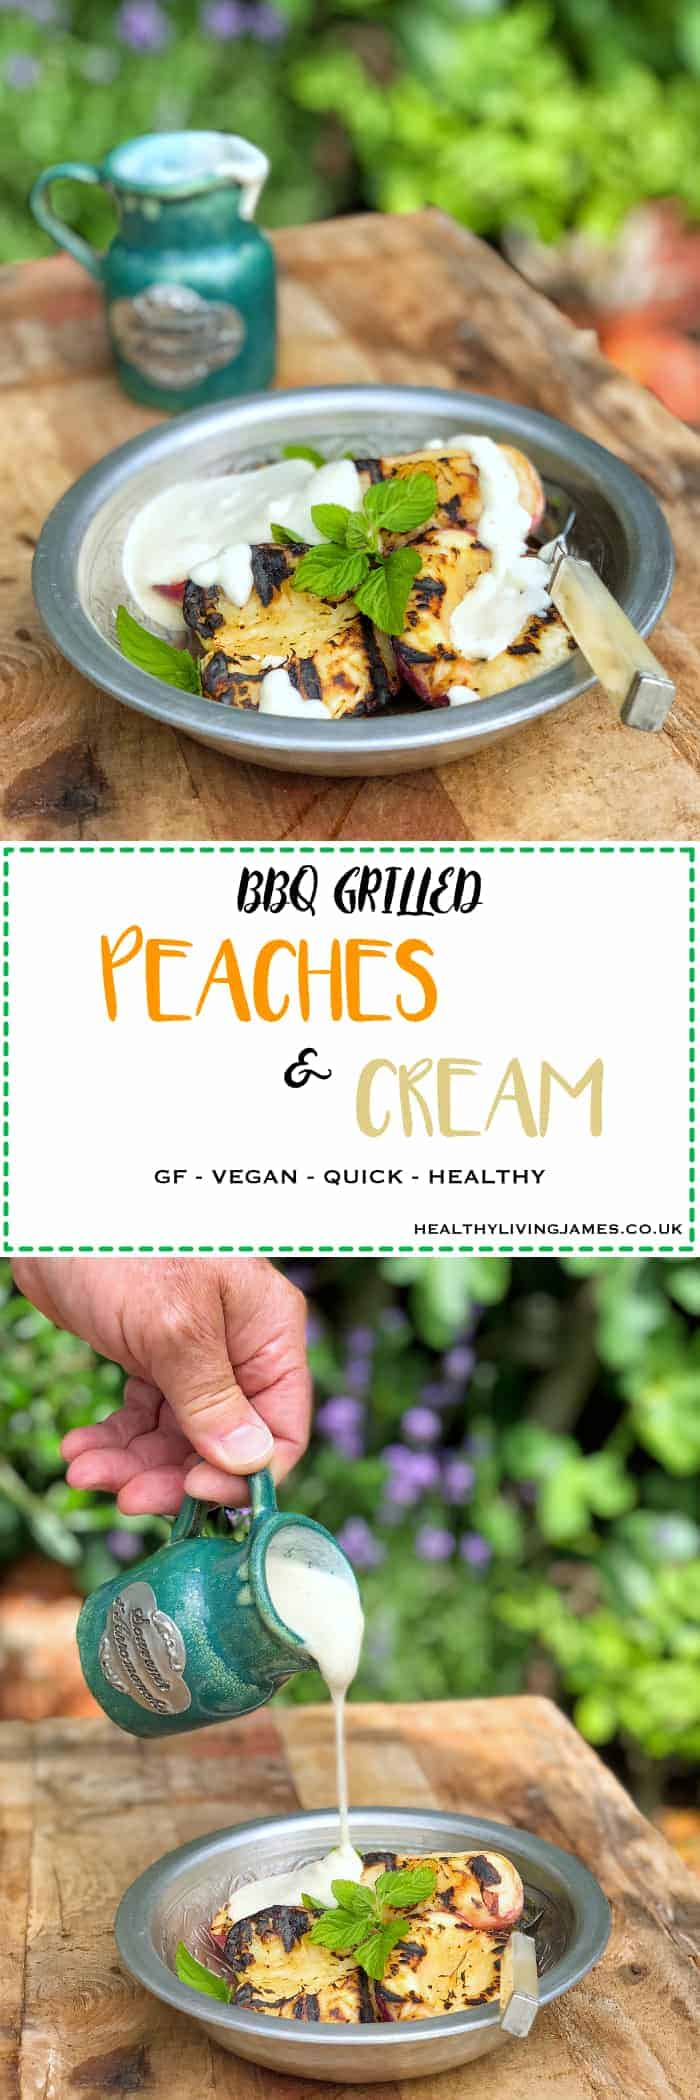 BBQ Grilled Peaches & Vanilla Cashew Cream